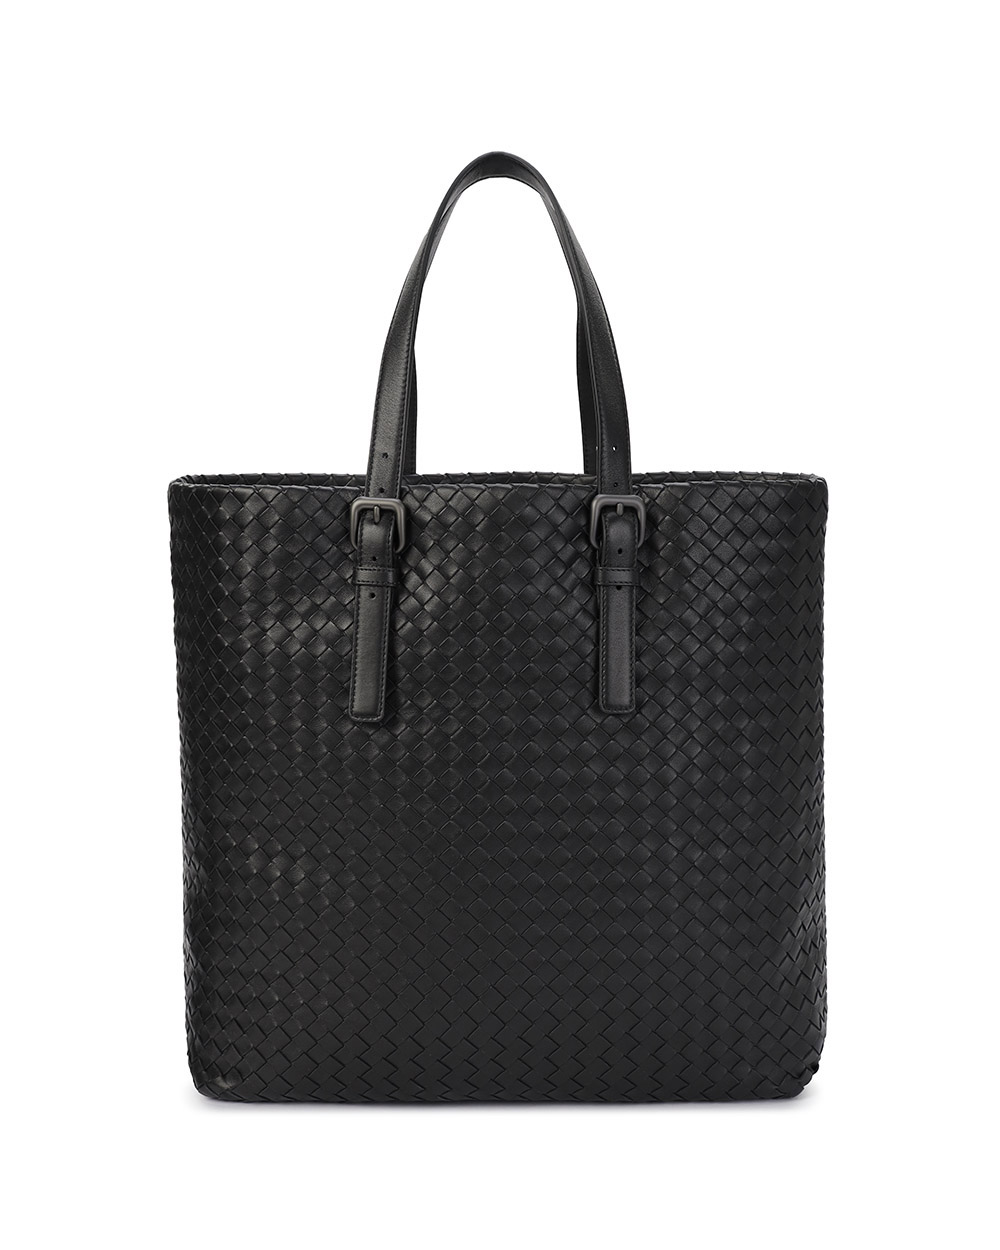 Woven Pattern Lamb Leather Handbag